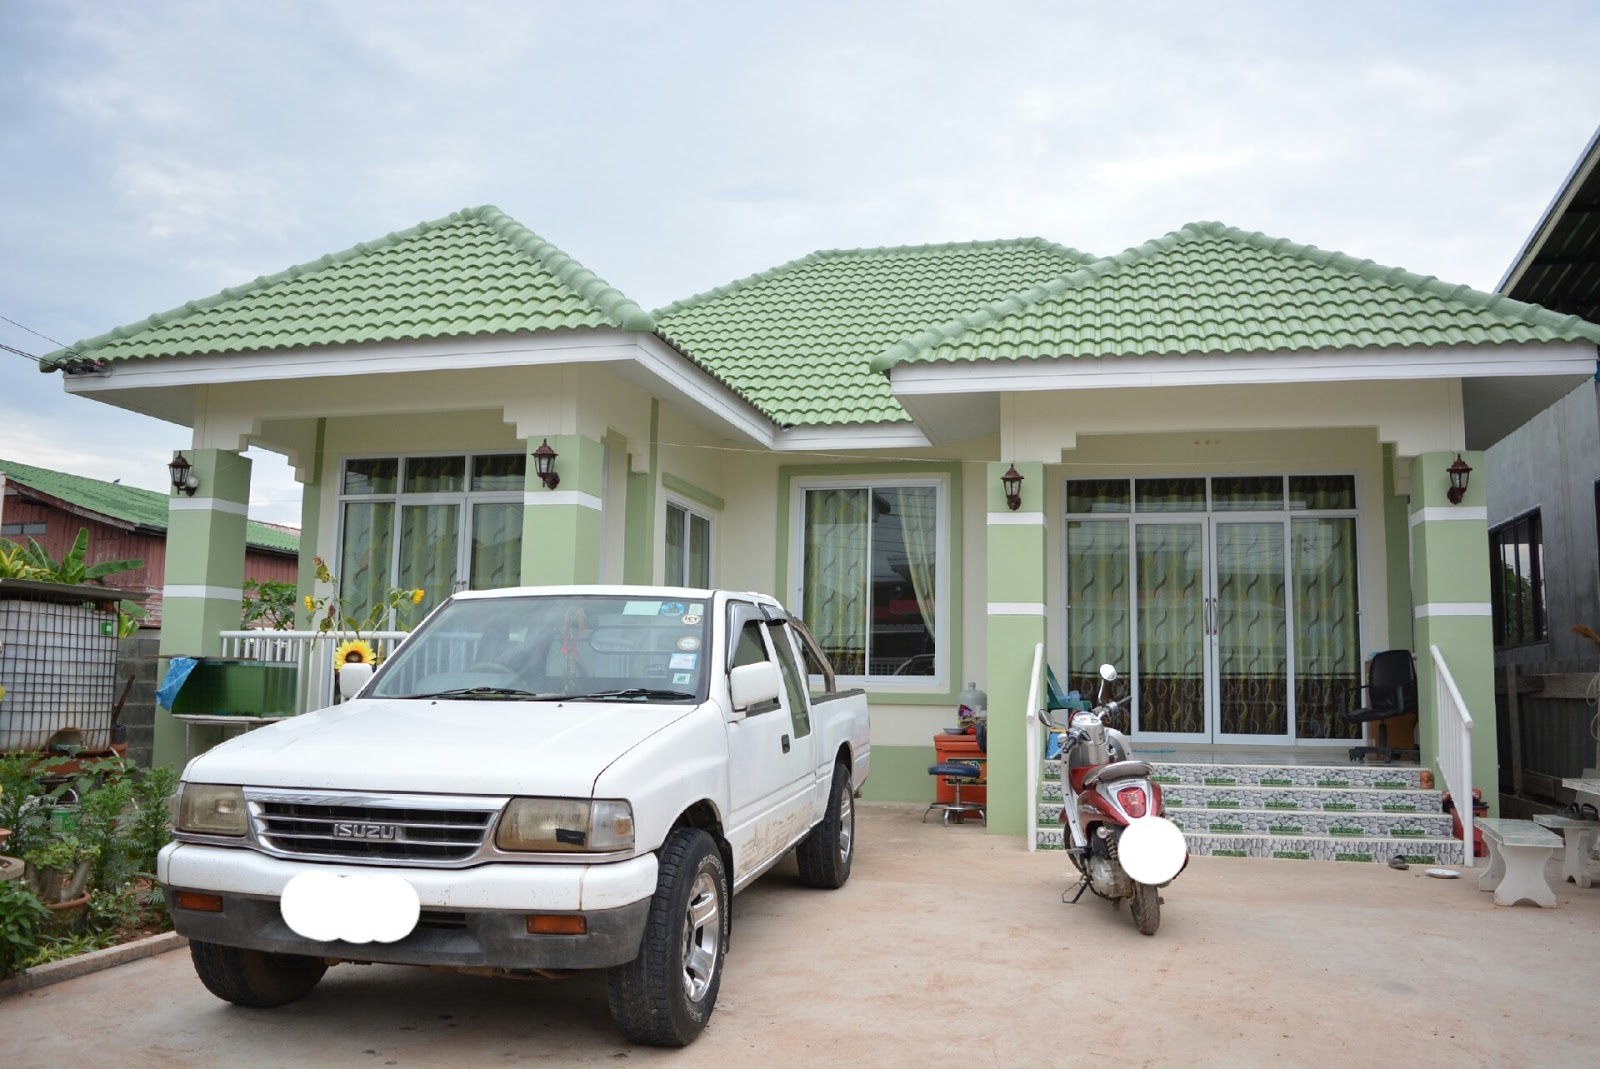 A single-storey house is a popular home choice. It is simple, economical, and convenient for the young and old alike. These are the examples of single-storey houses that consists of 3 bedrooms, 3-4 bathrooms, living area and a kitchen.